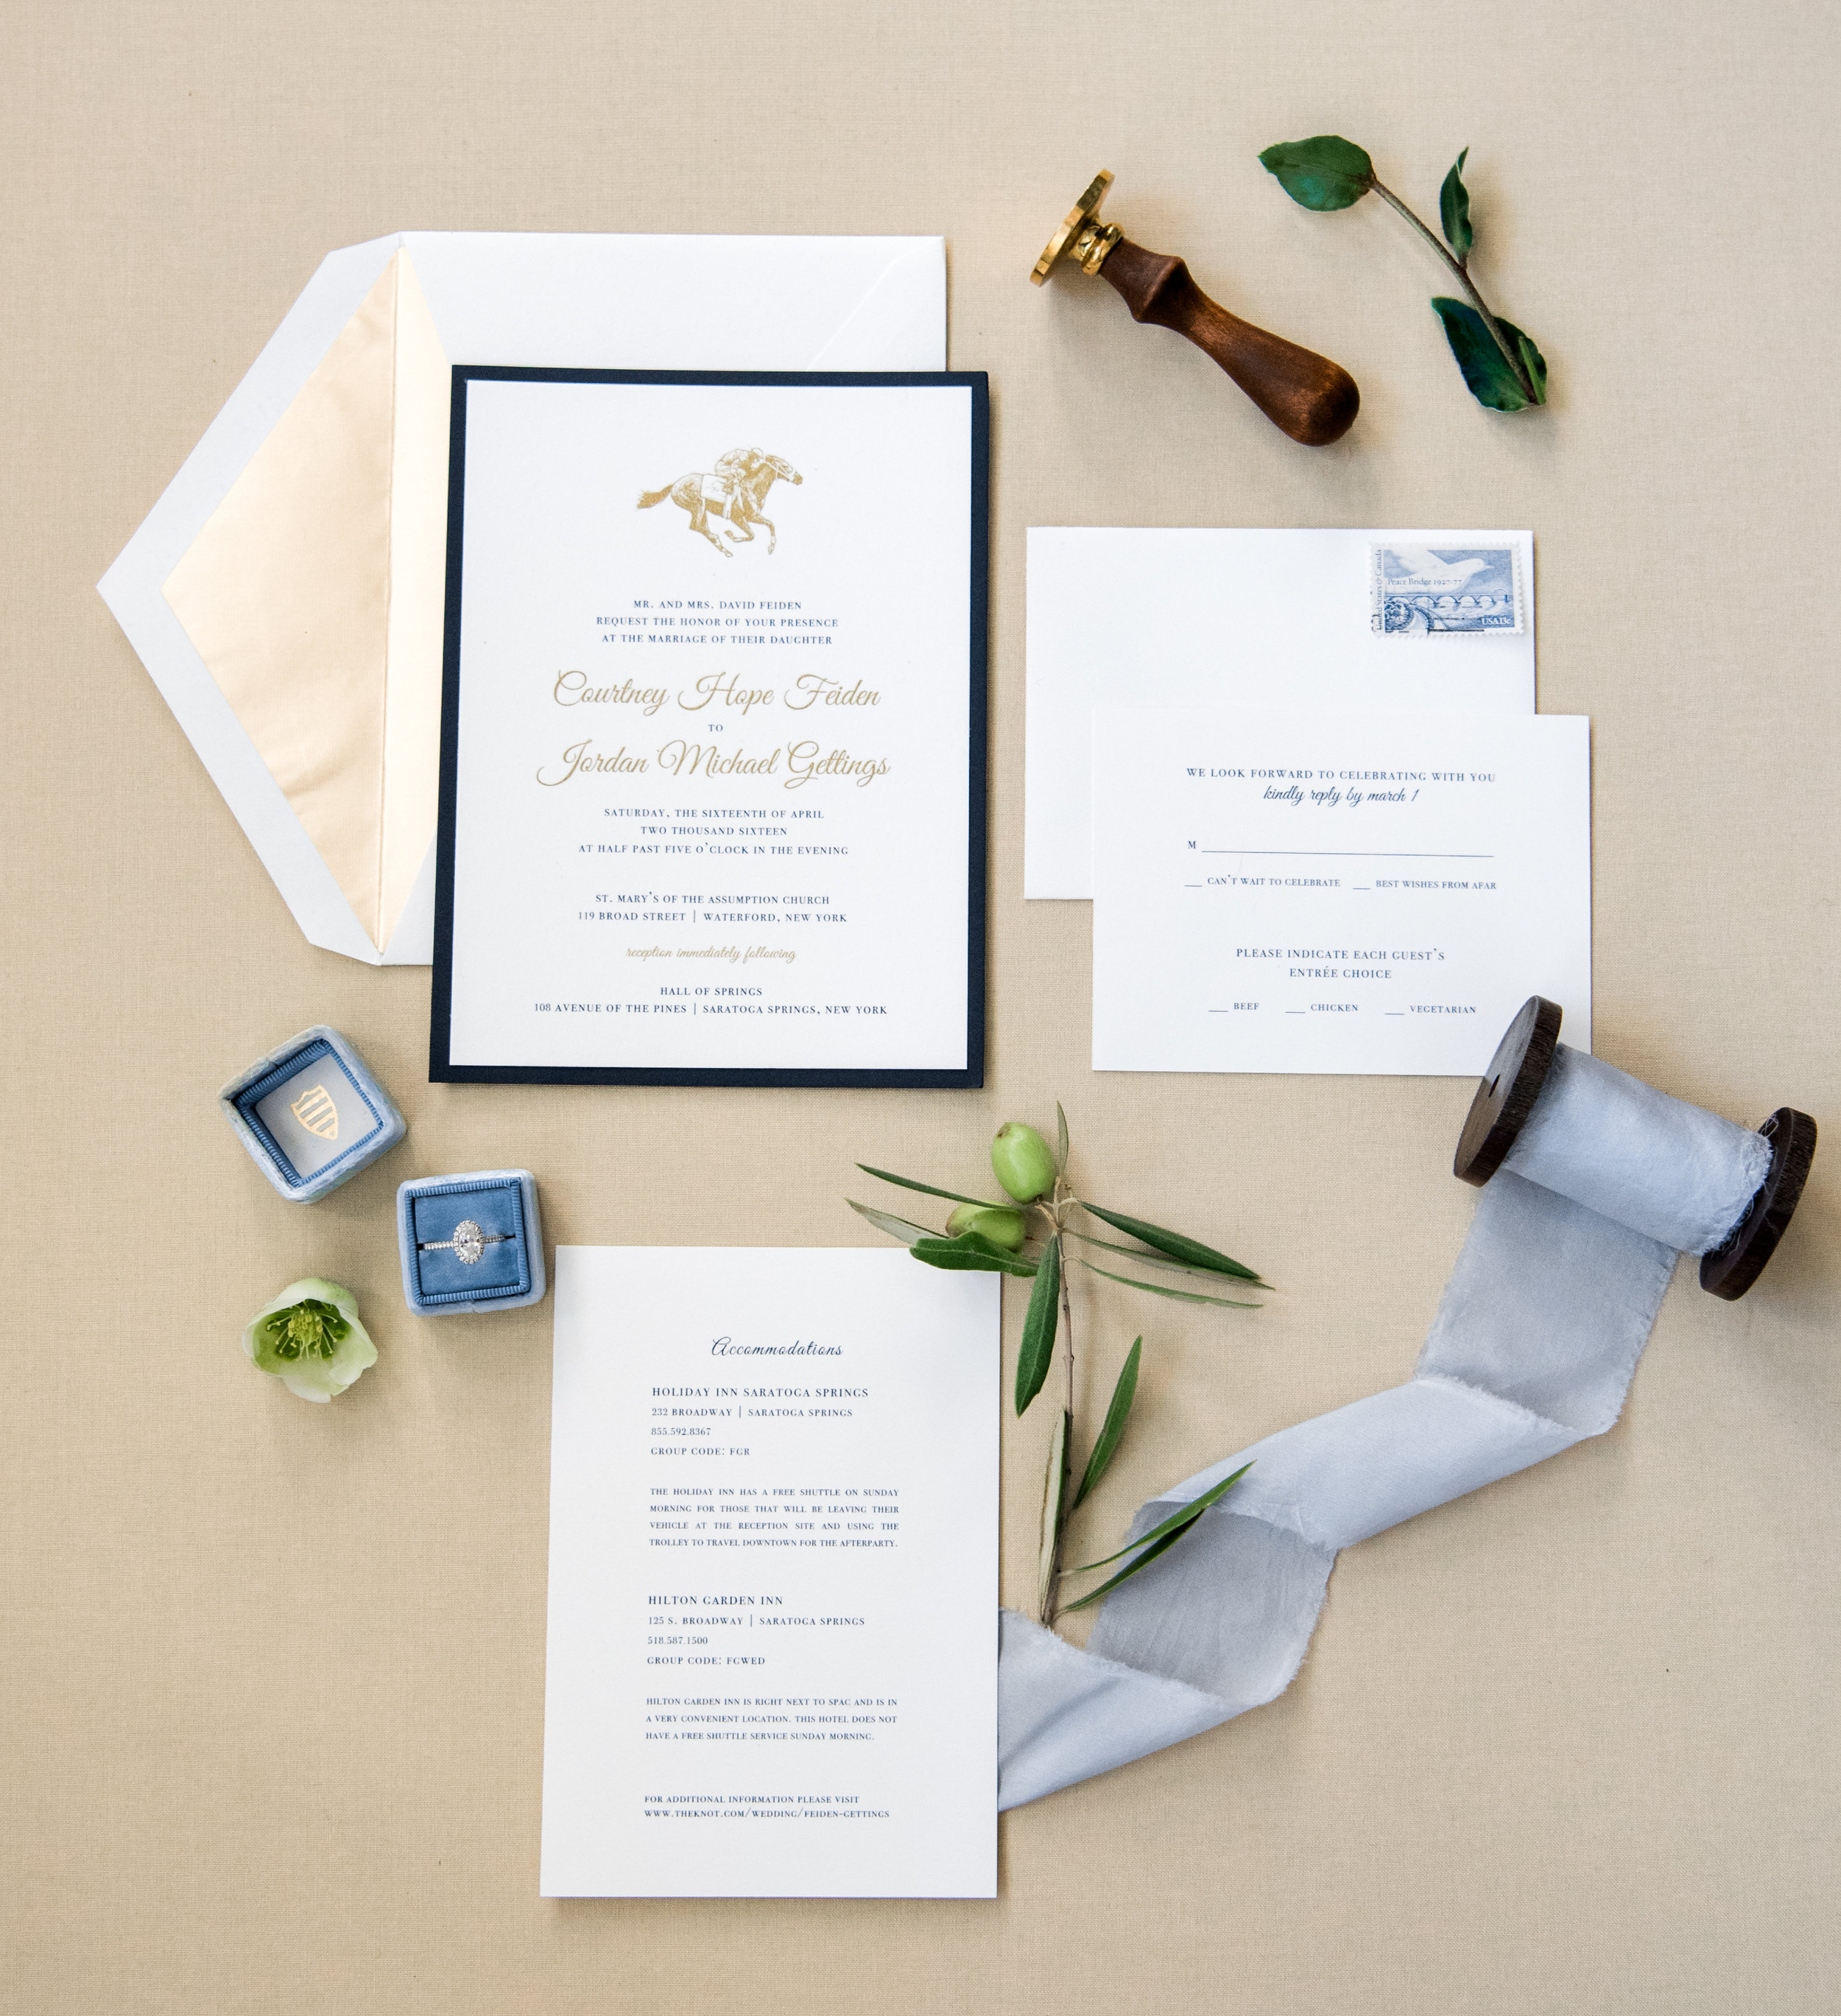 Courtney and Jordan's wedding invitation suite